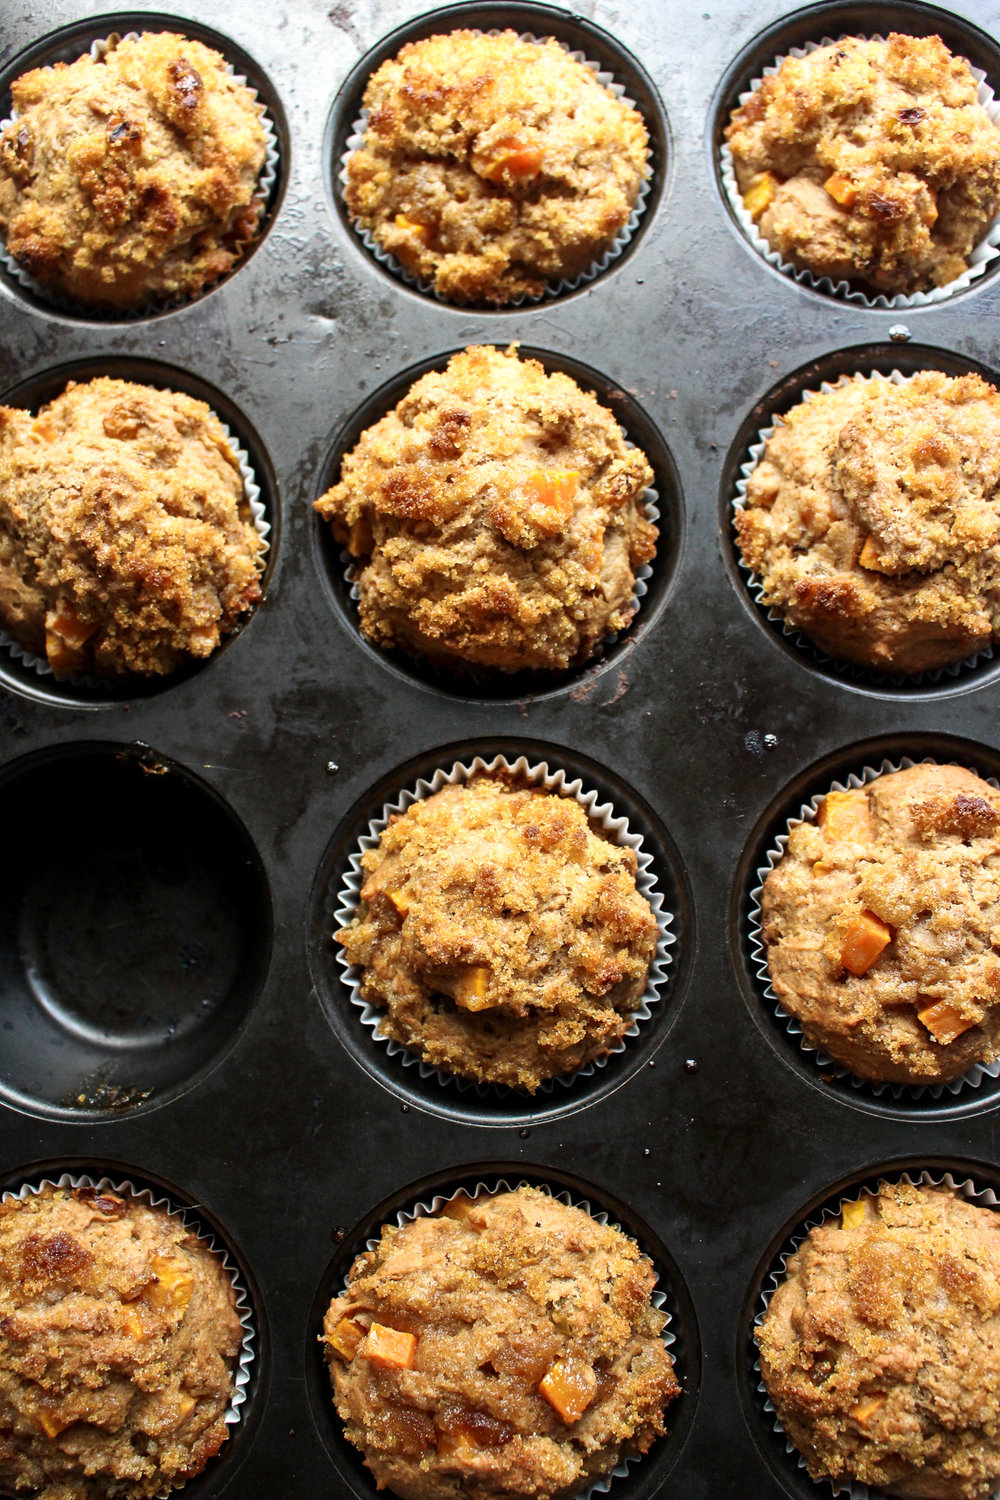 Sweet potato muffins | Me & The Moose. These one-bowl, whole grain muffins sneak in some vegetables at breakfast, lunch, or snack time. #sweetpotatomuffins #meandthemoose #sweet potatorecipes #thanksgiving #healthybaking